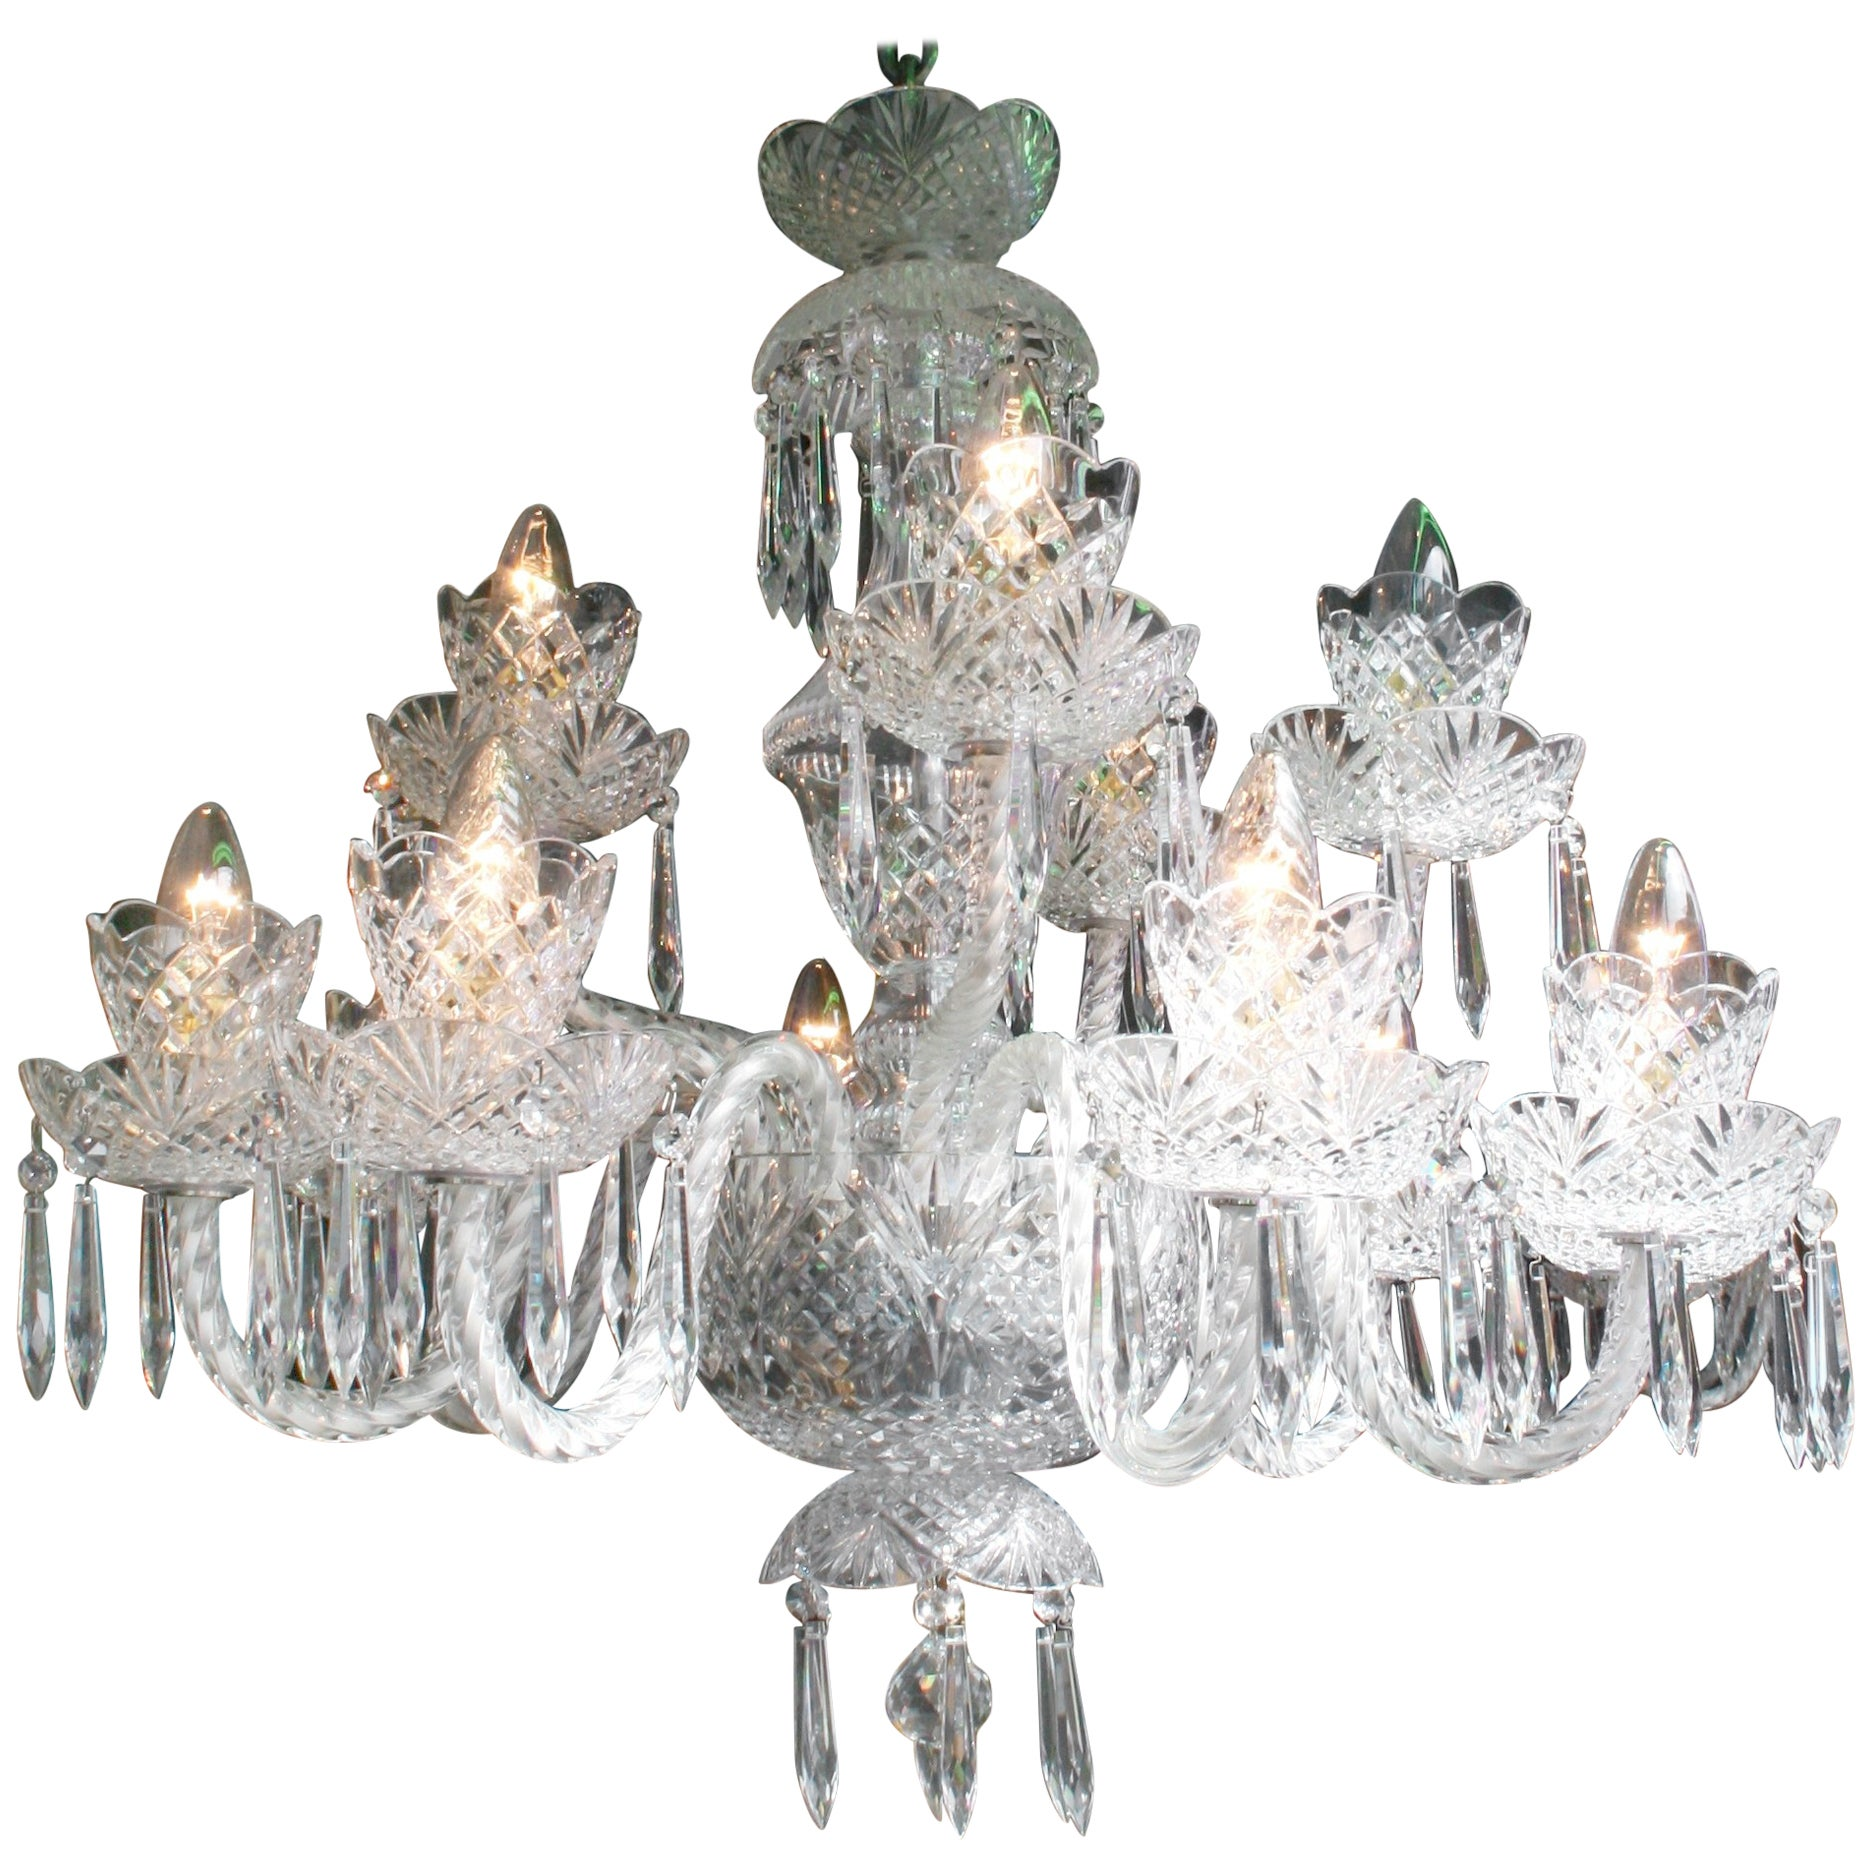 Fine waterford crystal twelve arm chandelier for sale at 1stdibs arubaitofo Choice Image